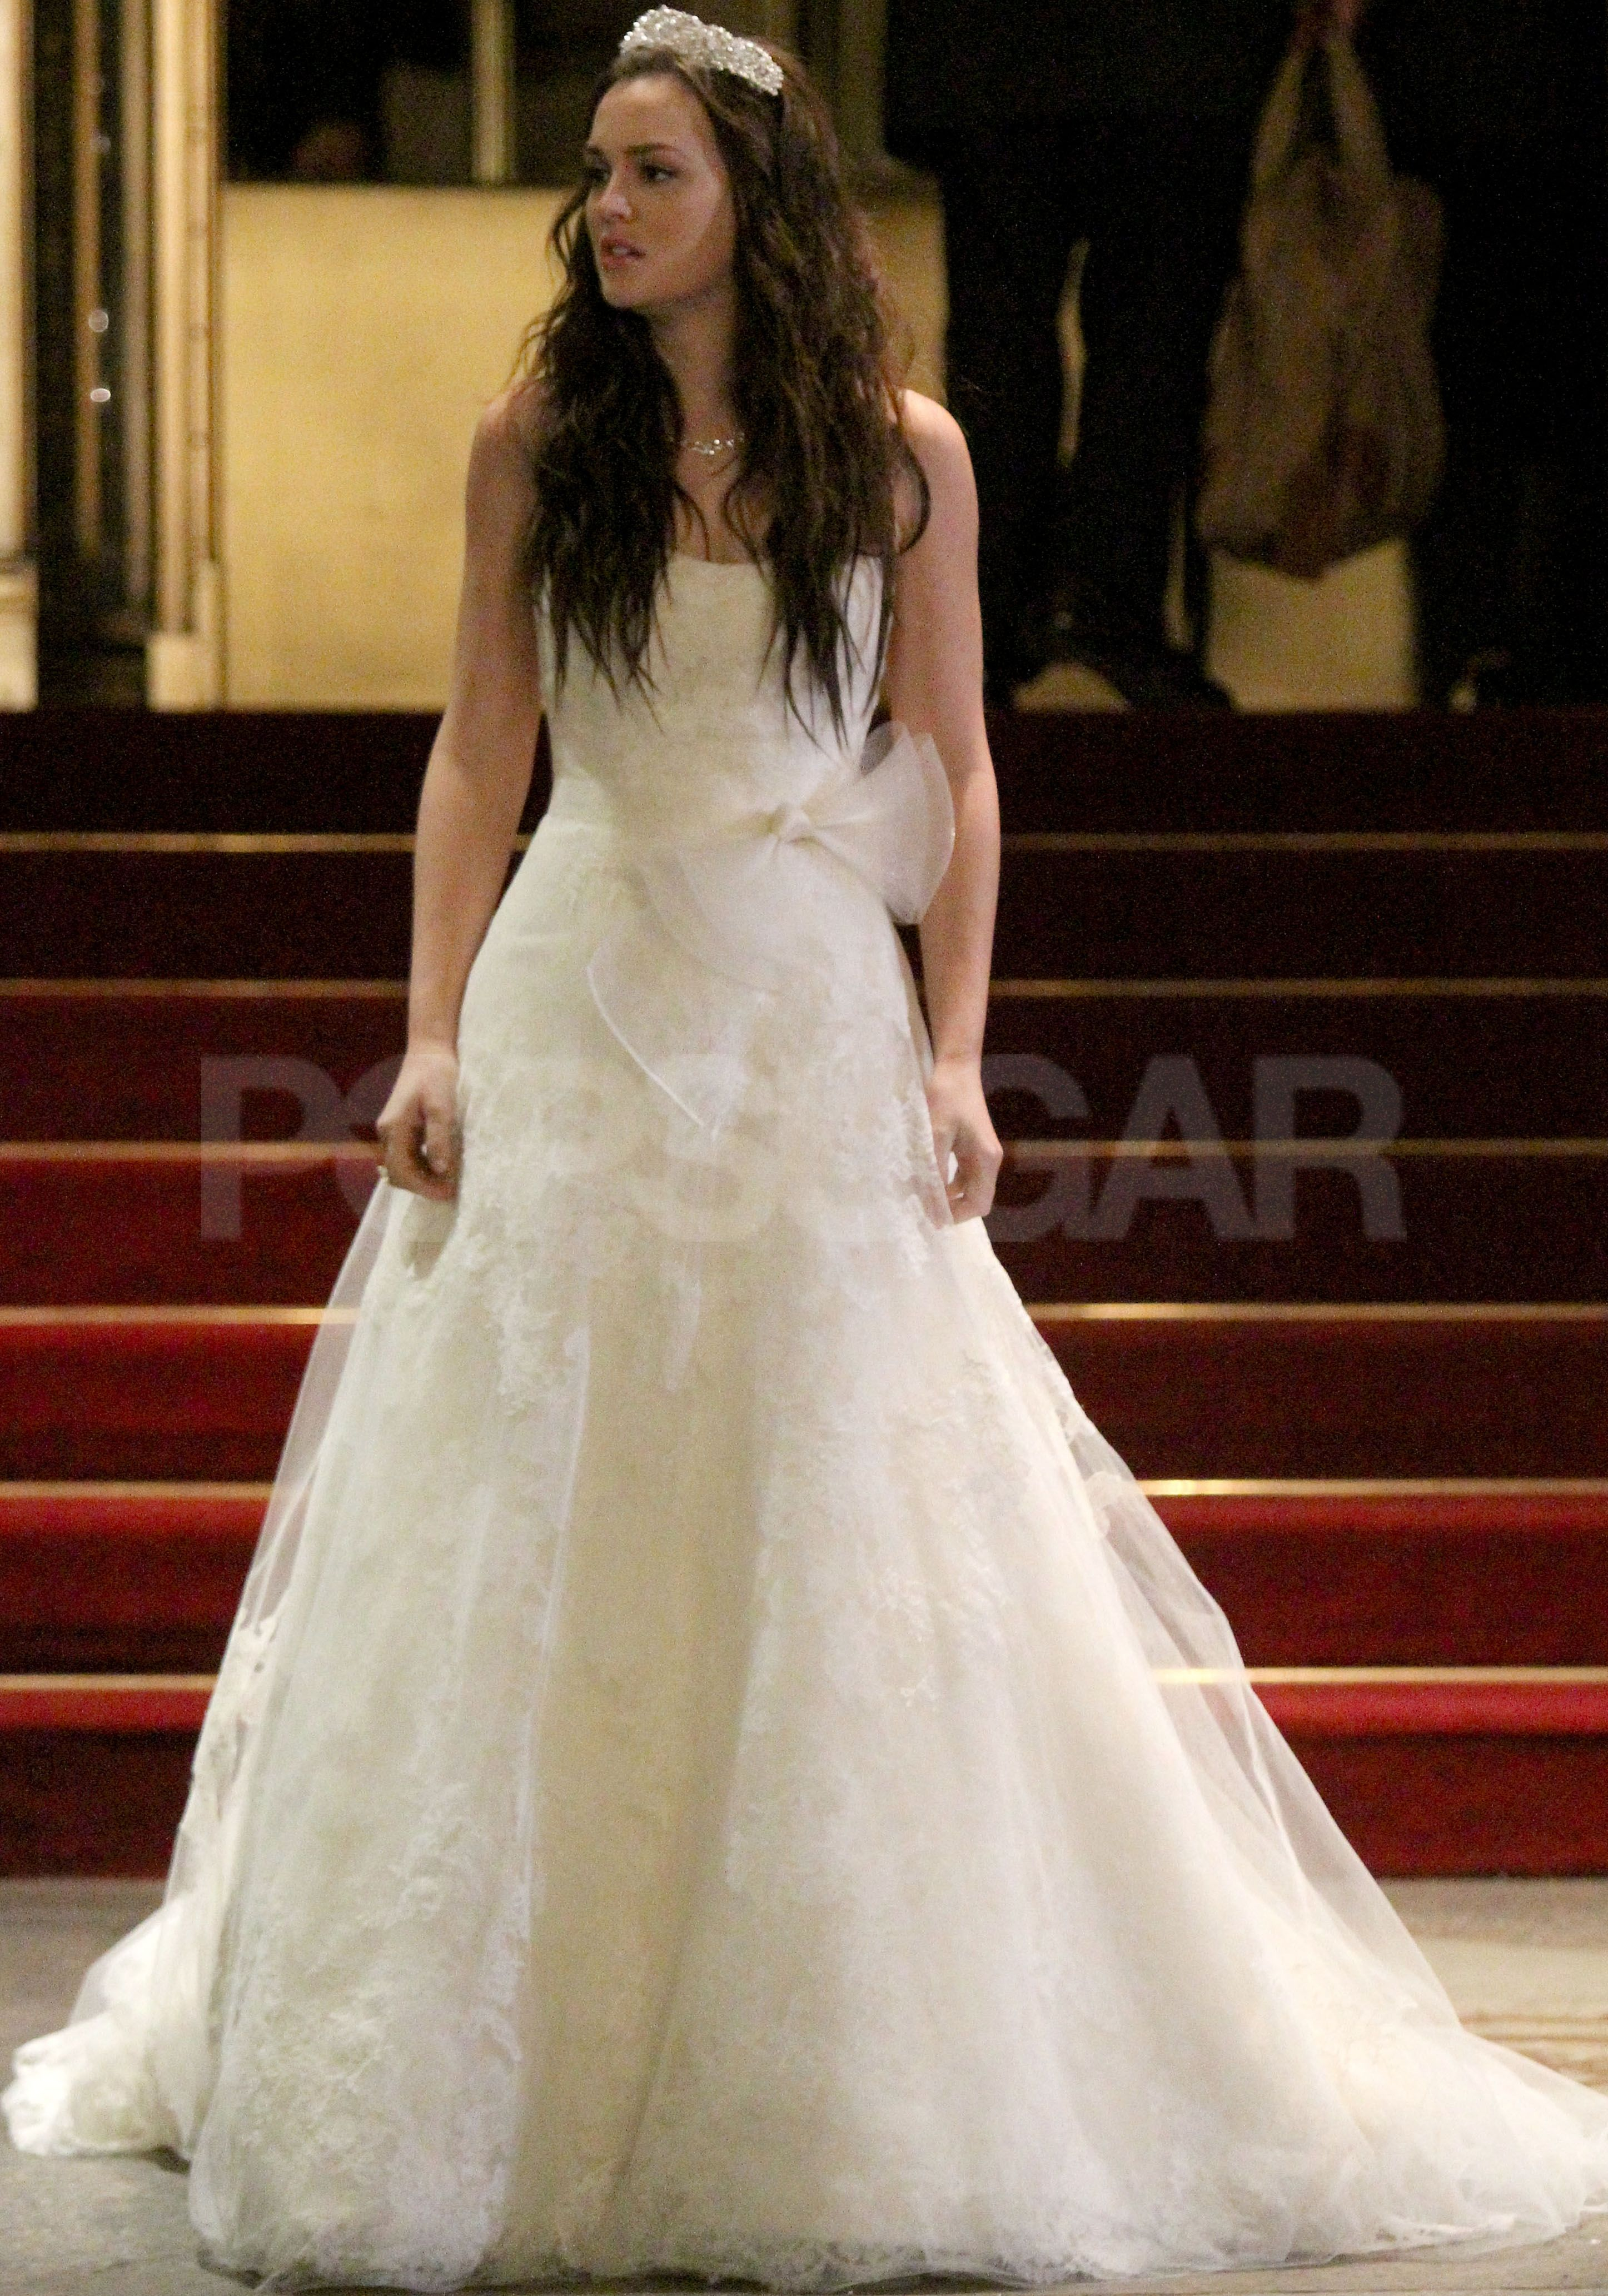 See Leighton Meester In Blair Waldorf S Wedding Dress For Gossip Girl Wedding Dresses For Girls Wedding Dresses Gossip Girl Wedding